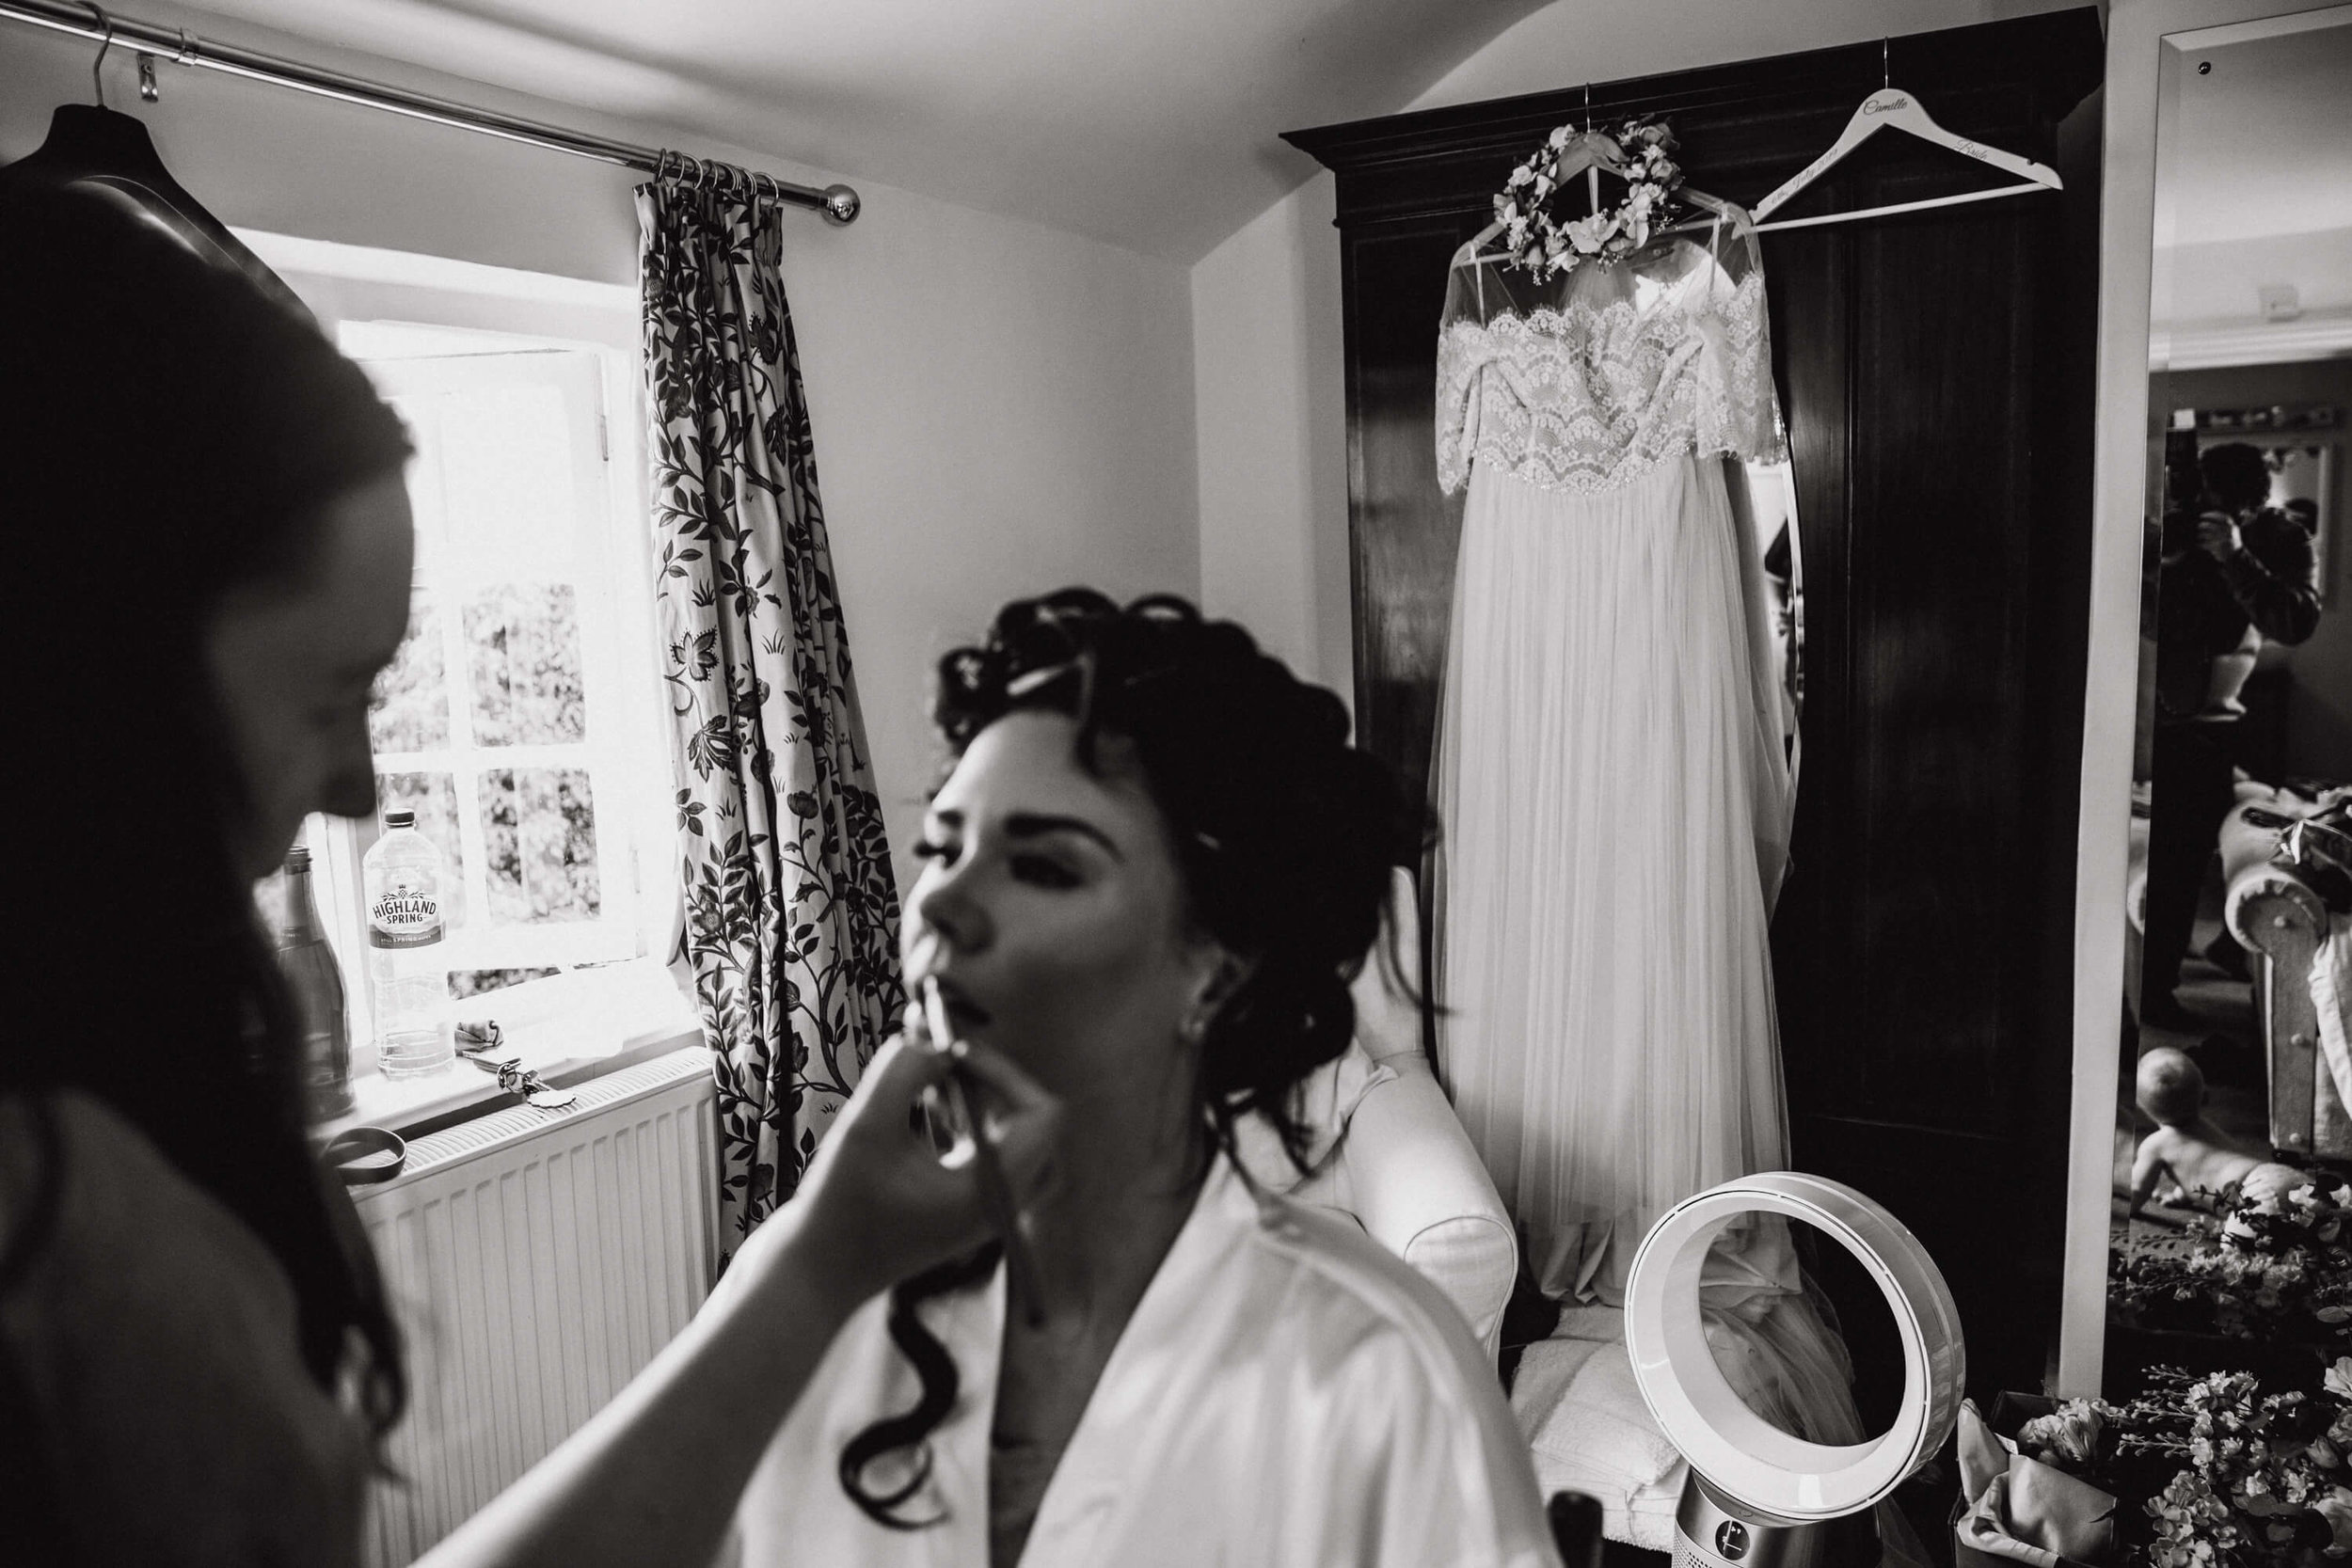 black and white monochrome photograph of wedding dress hung on cupboard